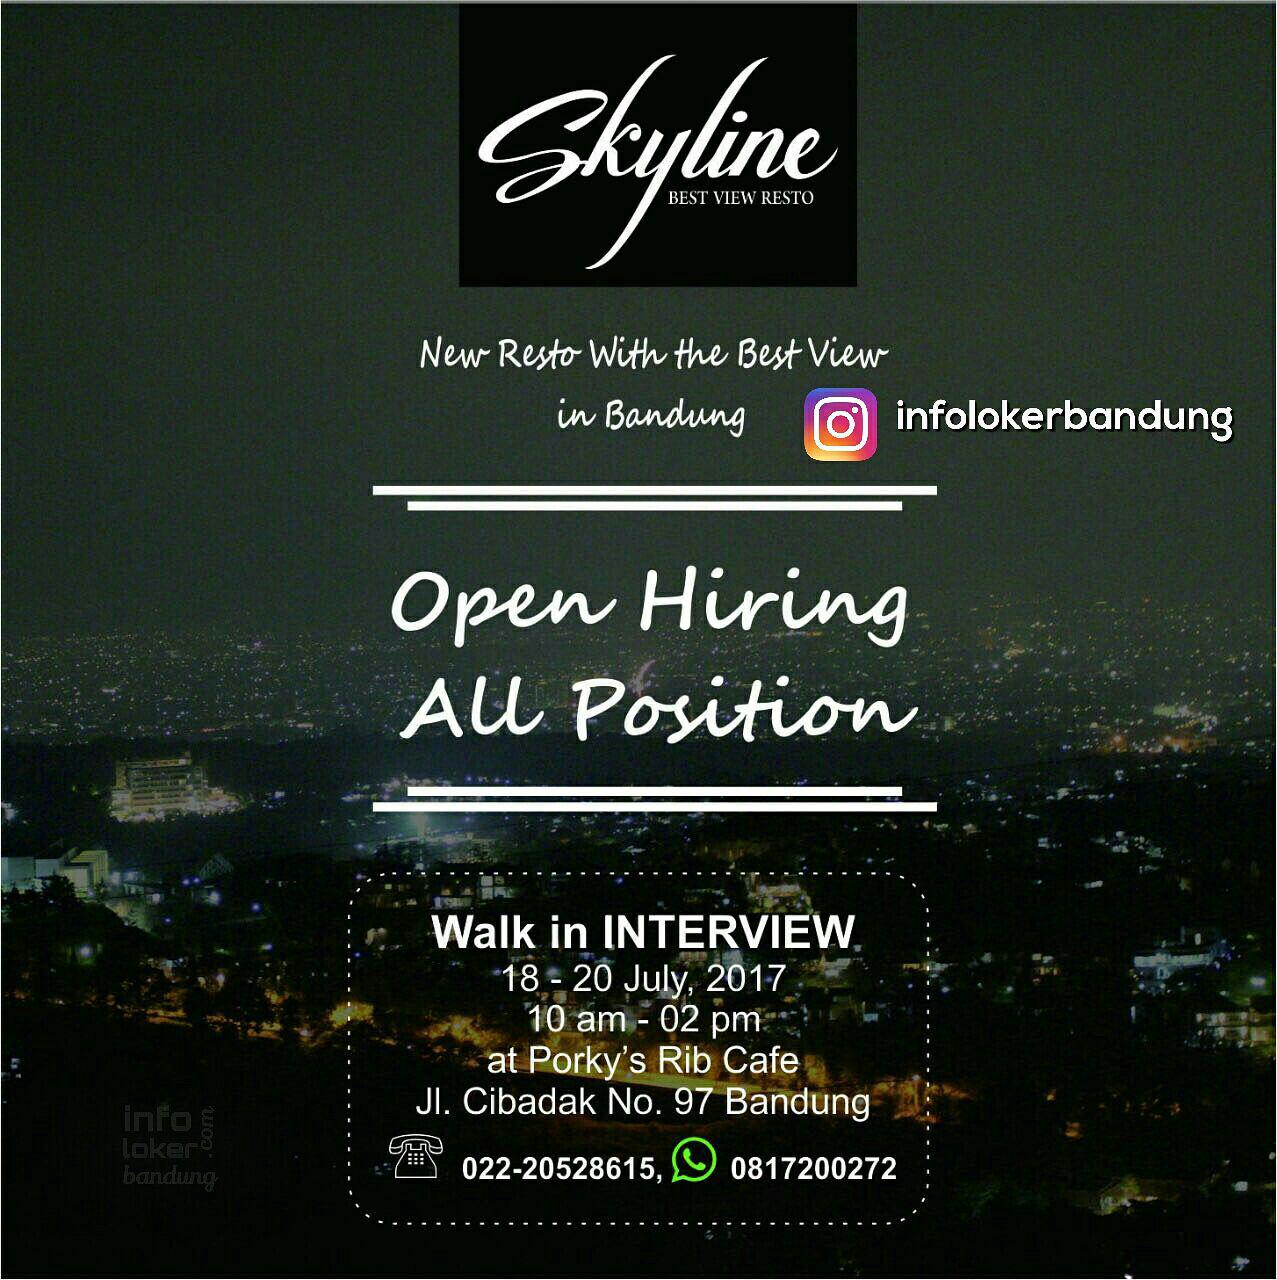 Walk In Interview Skyline Best View Resto Bandung Juli 2017